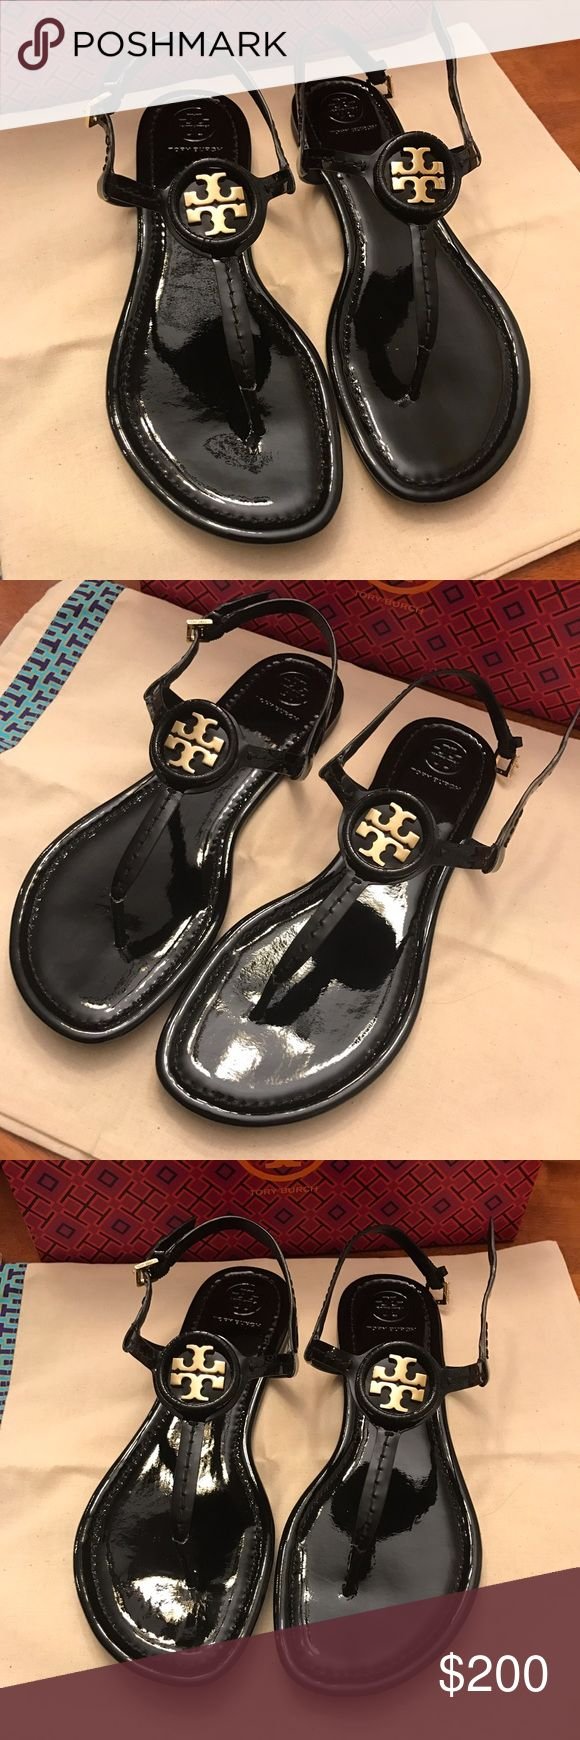 Size 8 best to fit Runs small Tory Burch Shoes Sandals